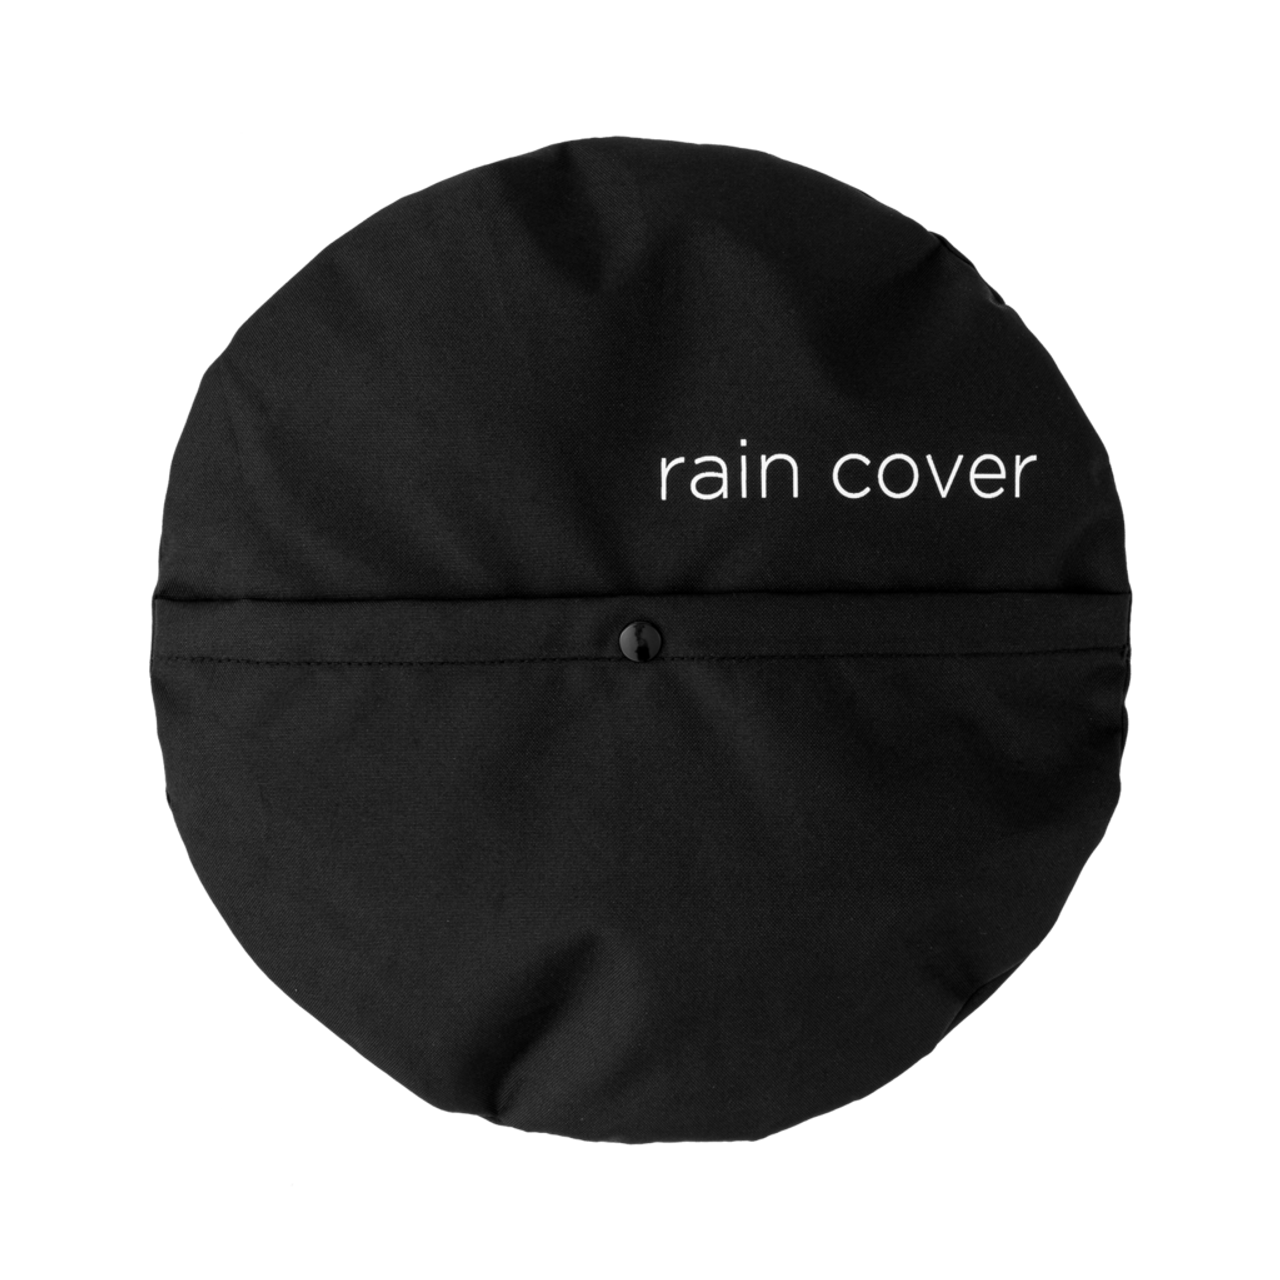 Edwards & Co Oscar Rain Cover at Baby Barn Discounts Edwards & co specifically designed rain storm cover to fit the Oscar MX.